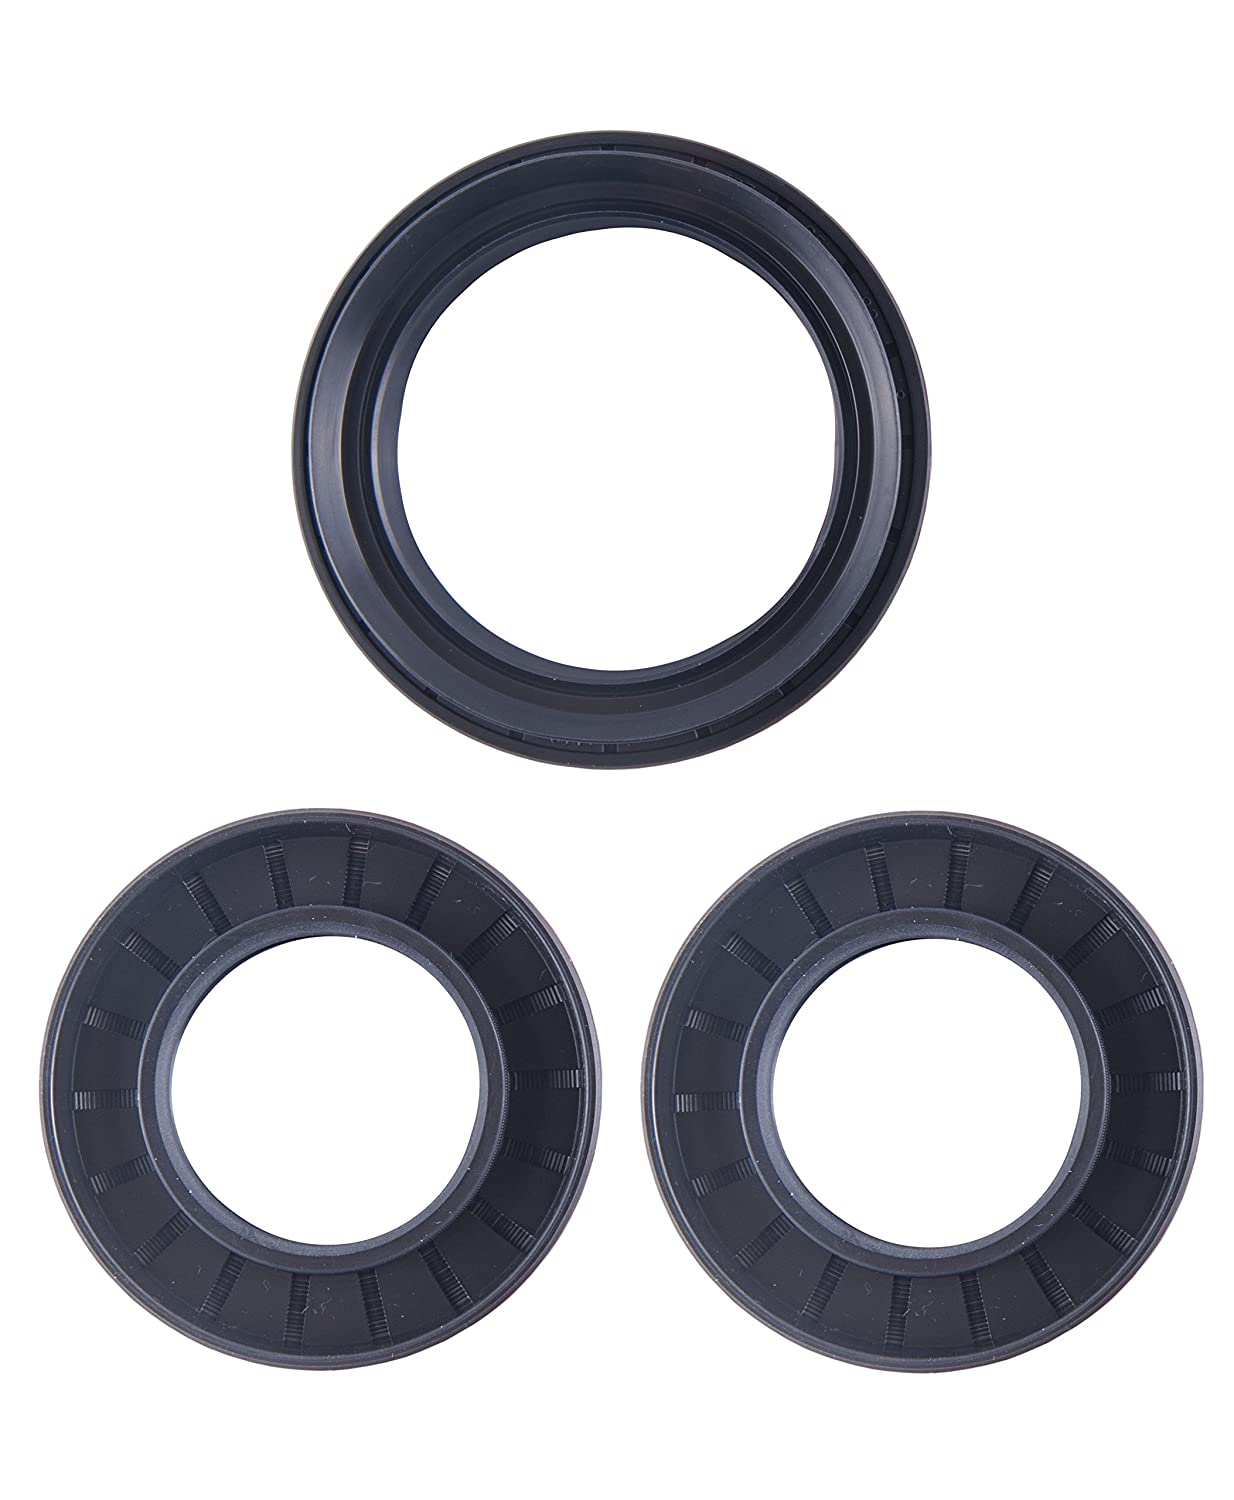 Yamaha rear differential seal kit 660 Grizzly 2002 2003 2004 2005 2006-2008 East Lake Axle